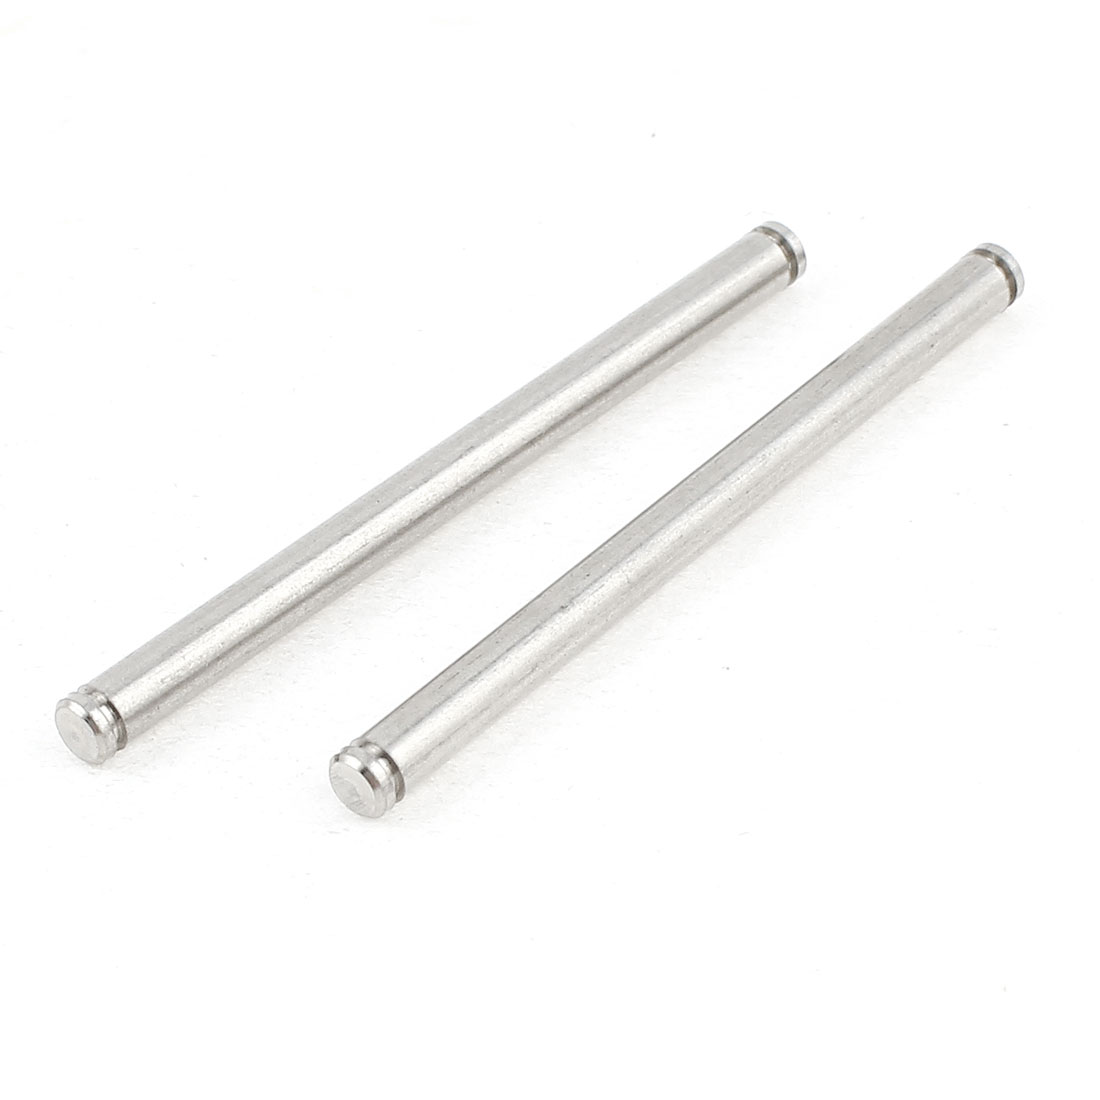 2Pcs 08069 Metal Front Lower Arm Round Pin B 43mm for 94188 RC 1/10 Car